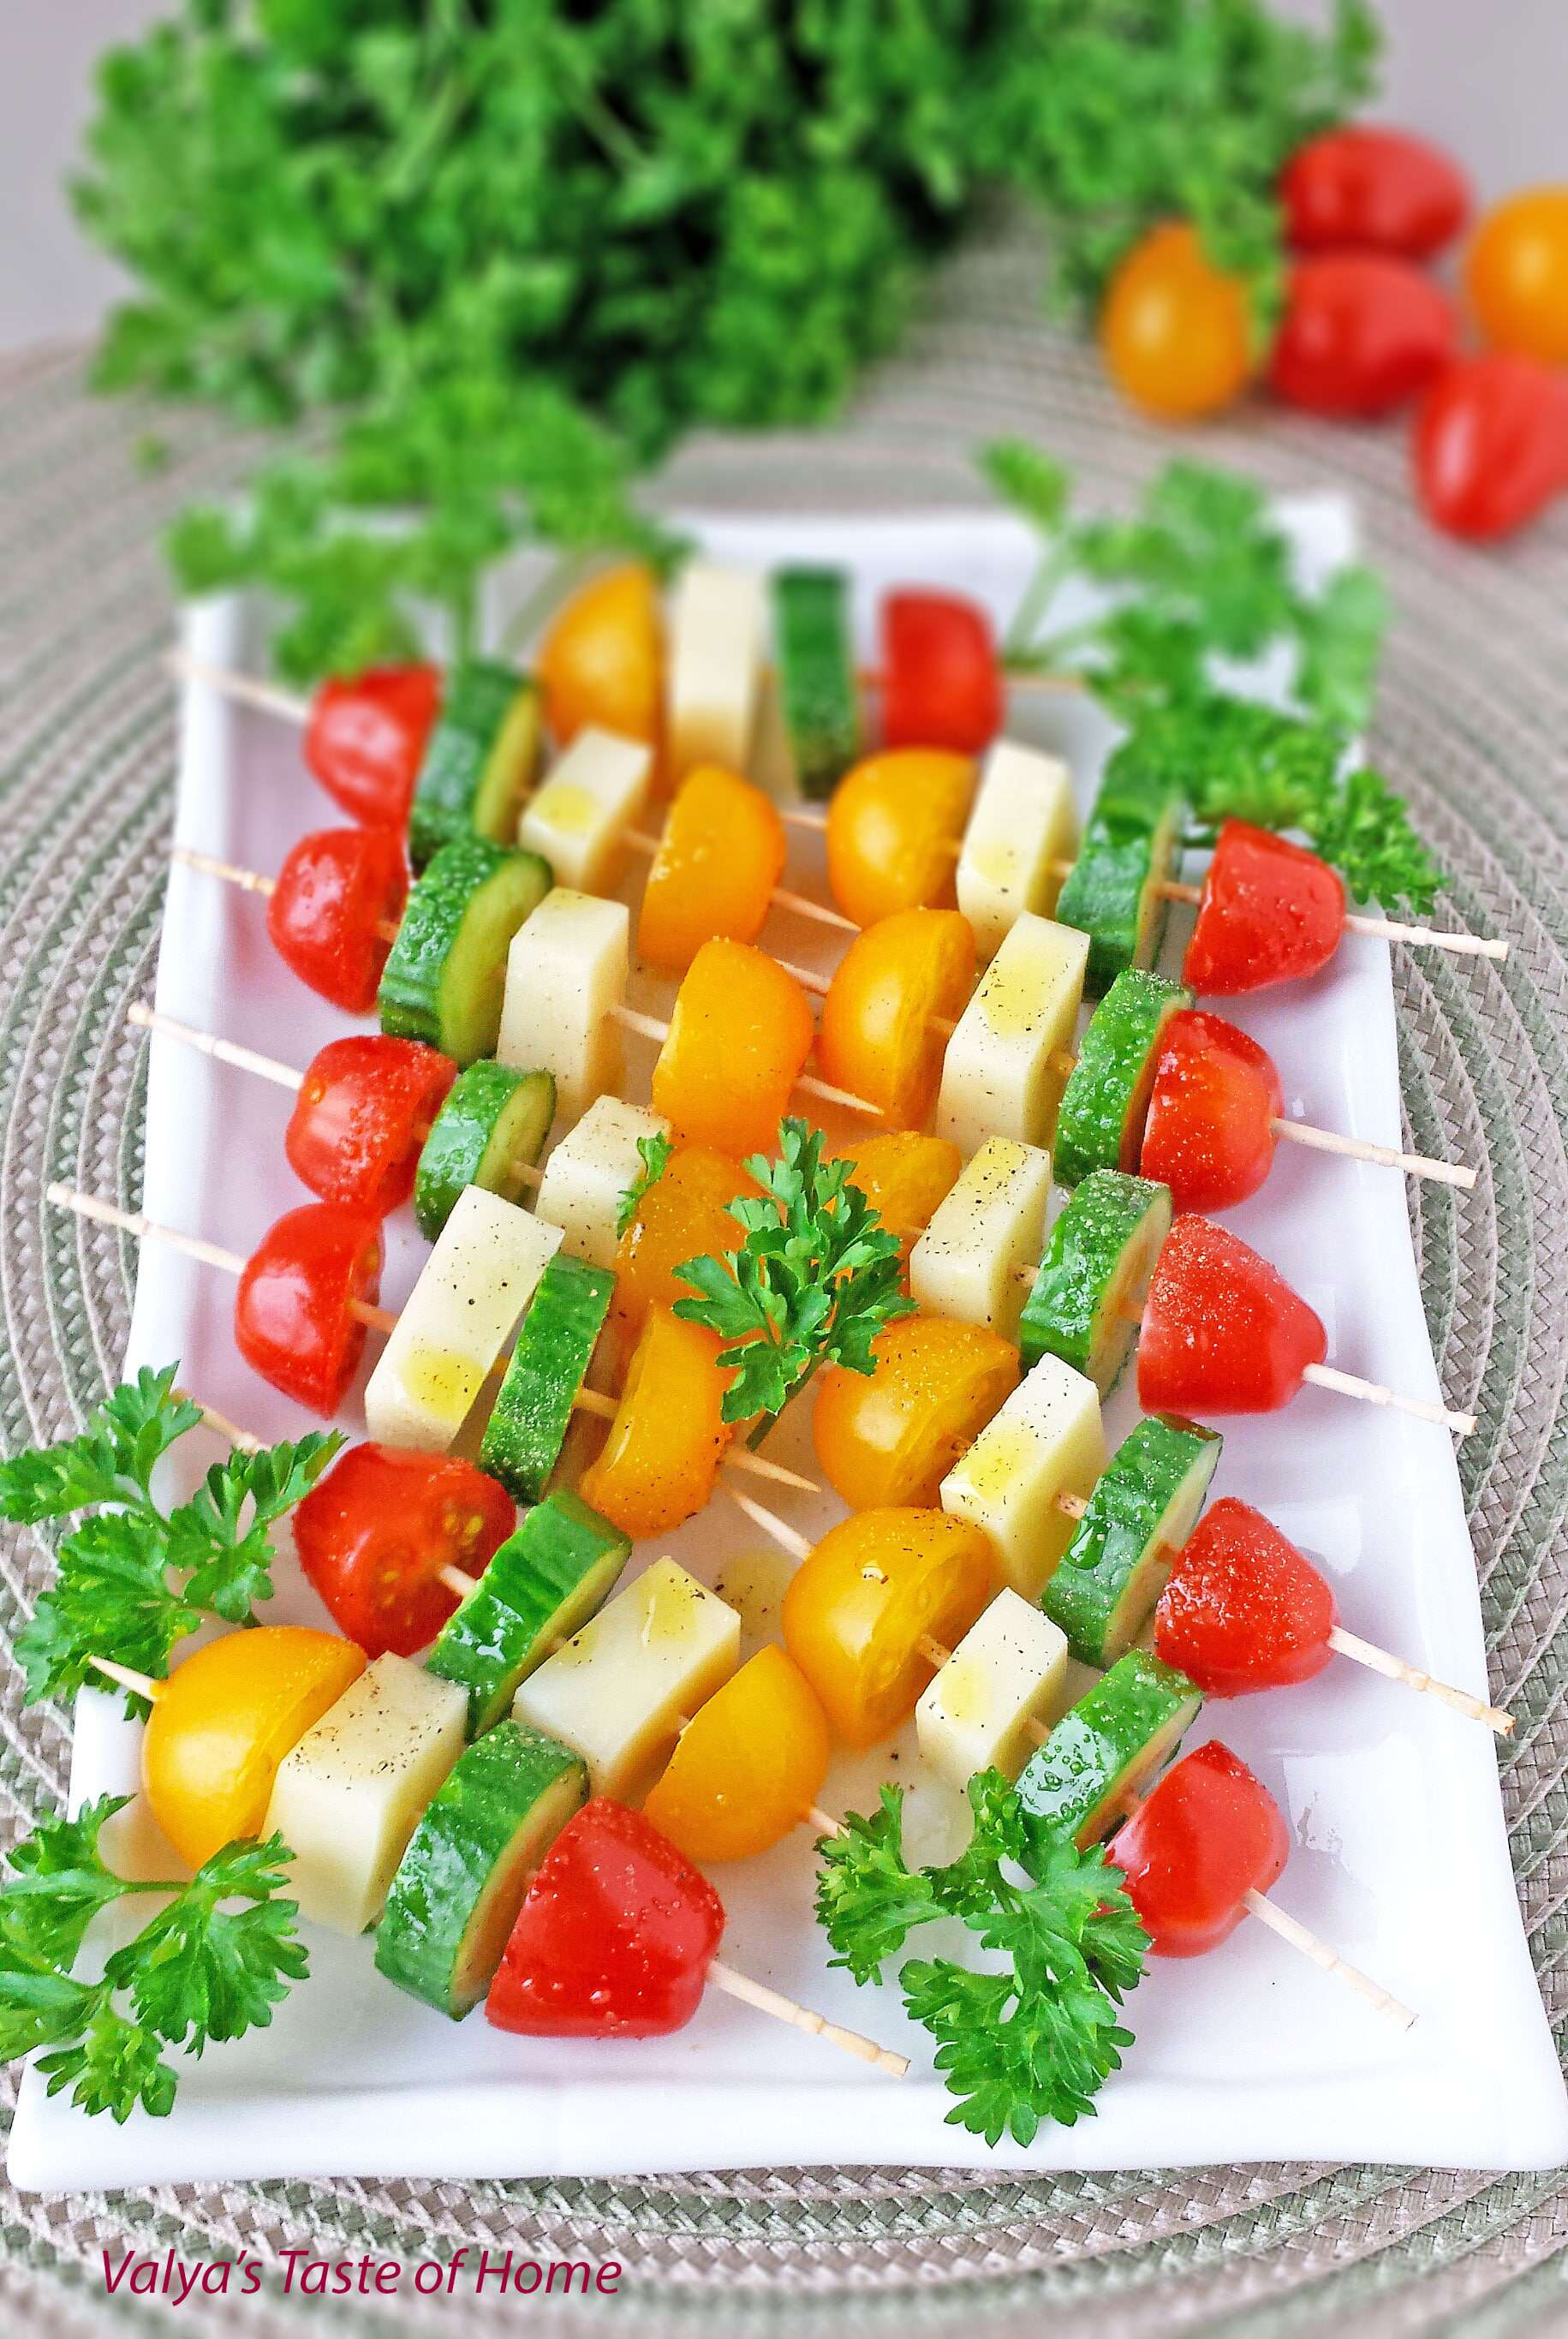 These delightful and healthy Tomatoes Cucumber and Mozzarella Cheese Kabob Appetizers seasoned with salt and pepper, and drizzled in olive oil are so easy to make and tastes absolutely delicious. #kabobappetizers #veggiekabobappetizers #partyfriendly #valyastasteofhome